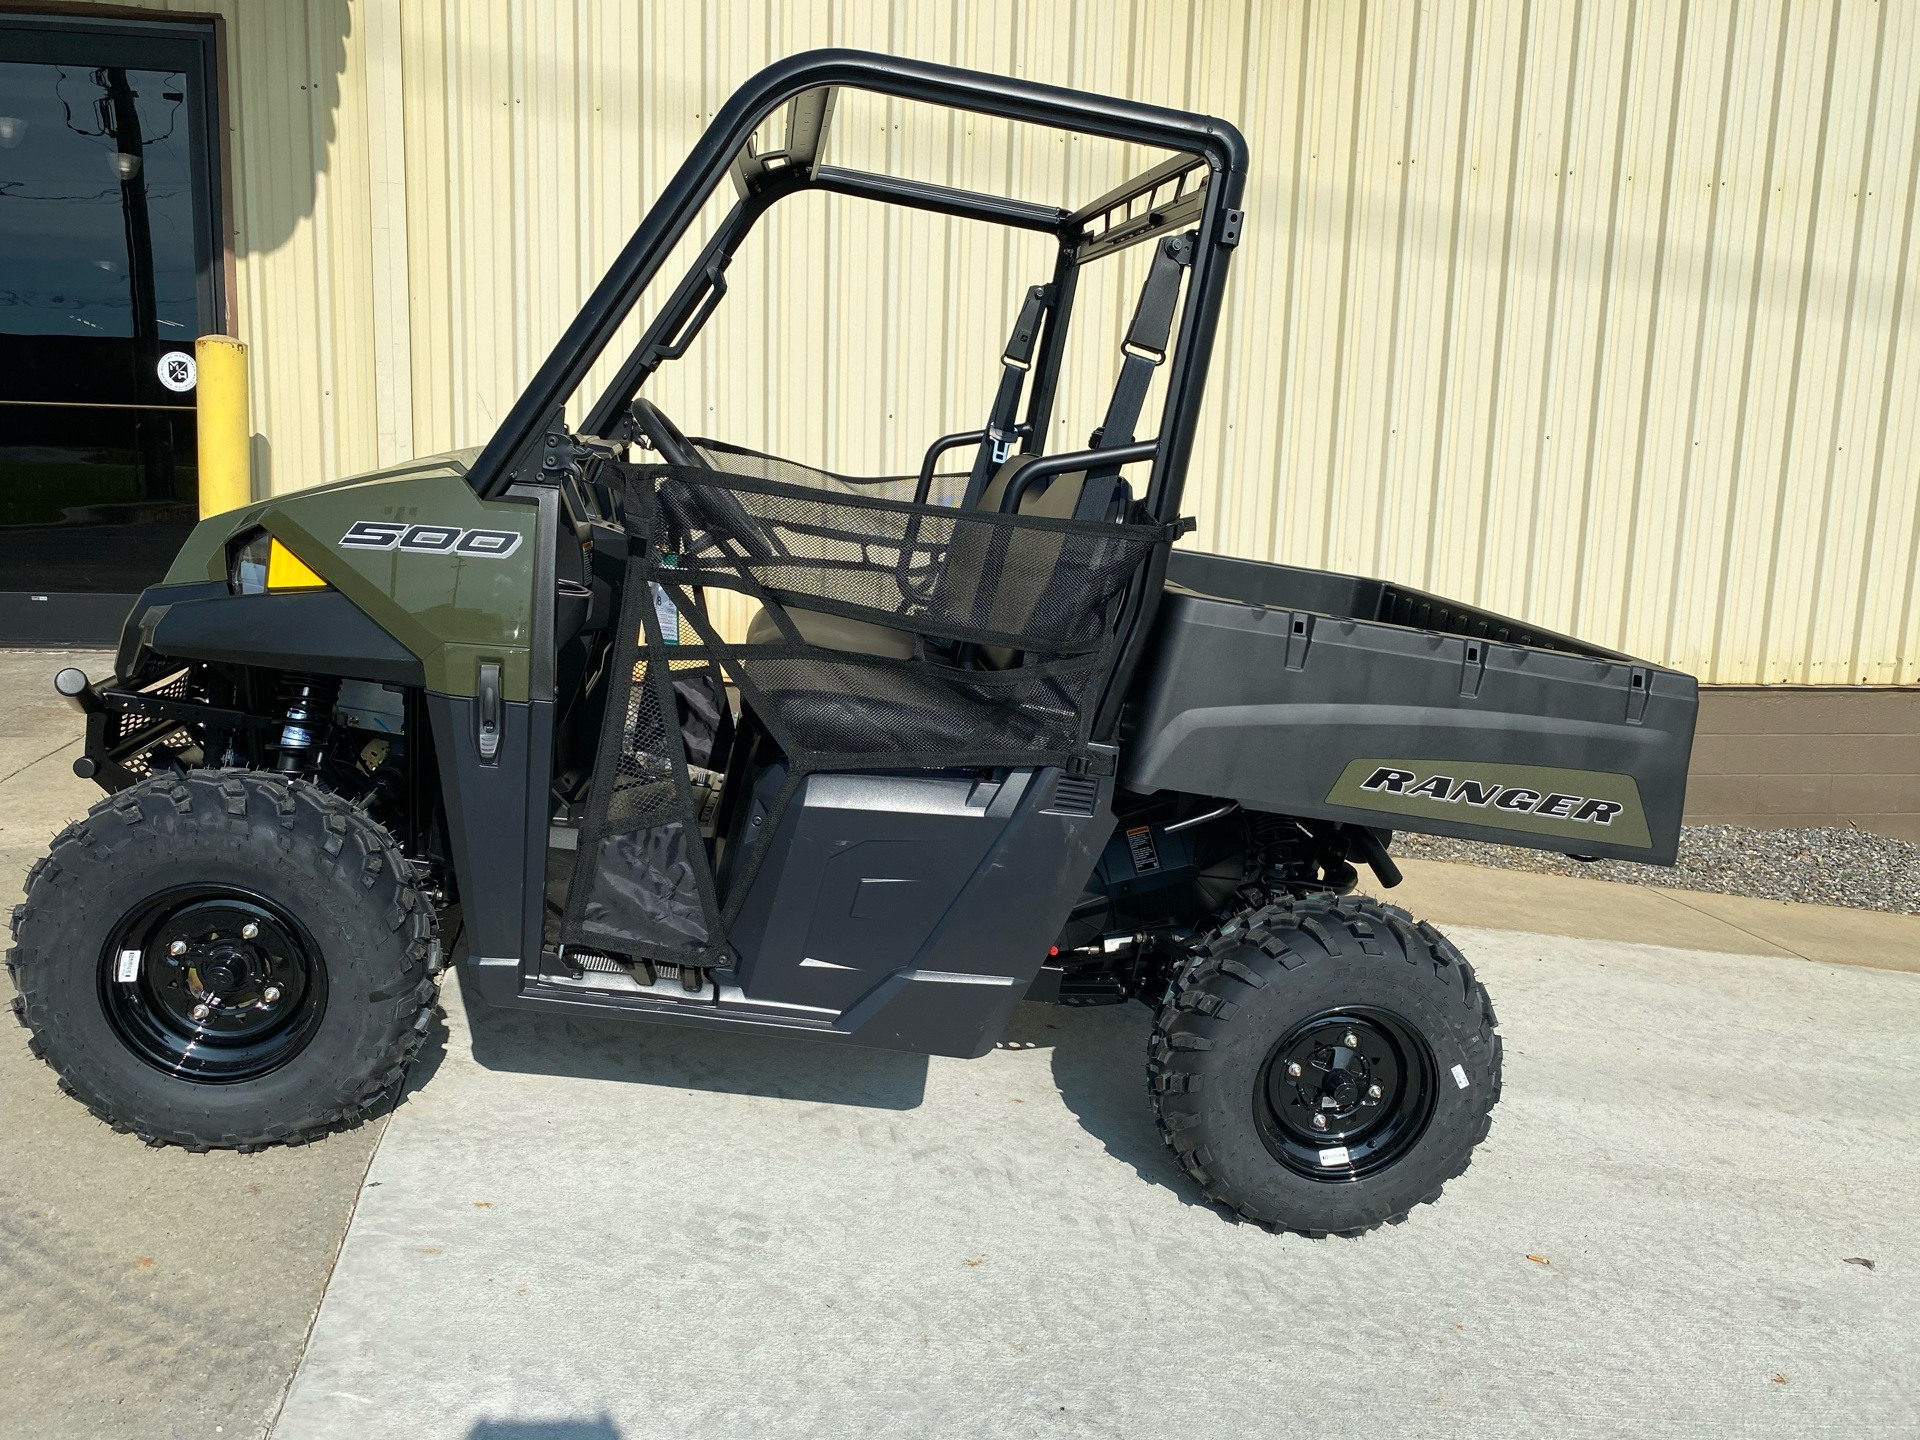 2021 Polaris Ranger 500 in Statesville, North Carolina - Photo 1